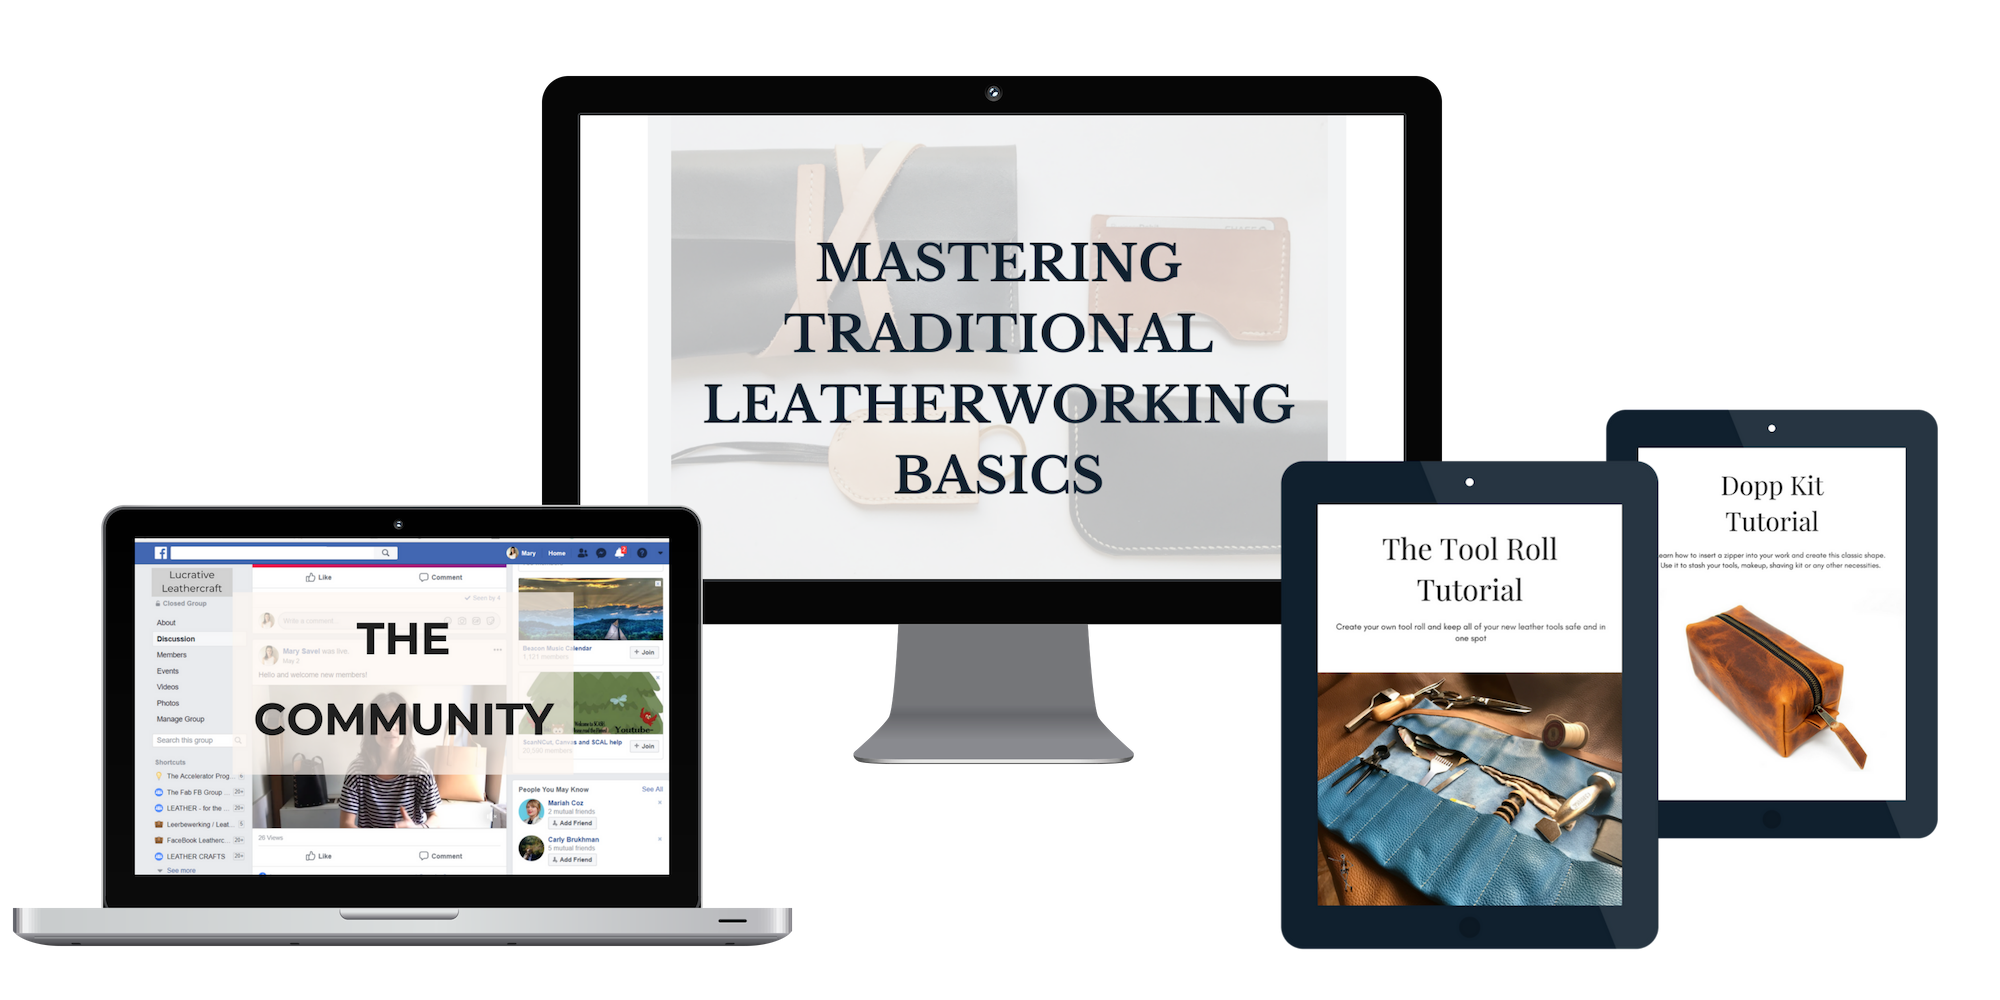 mastering traditional leatherworking basics, the ecourse from leather beast